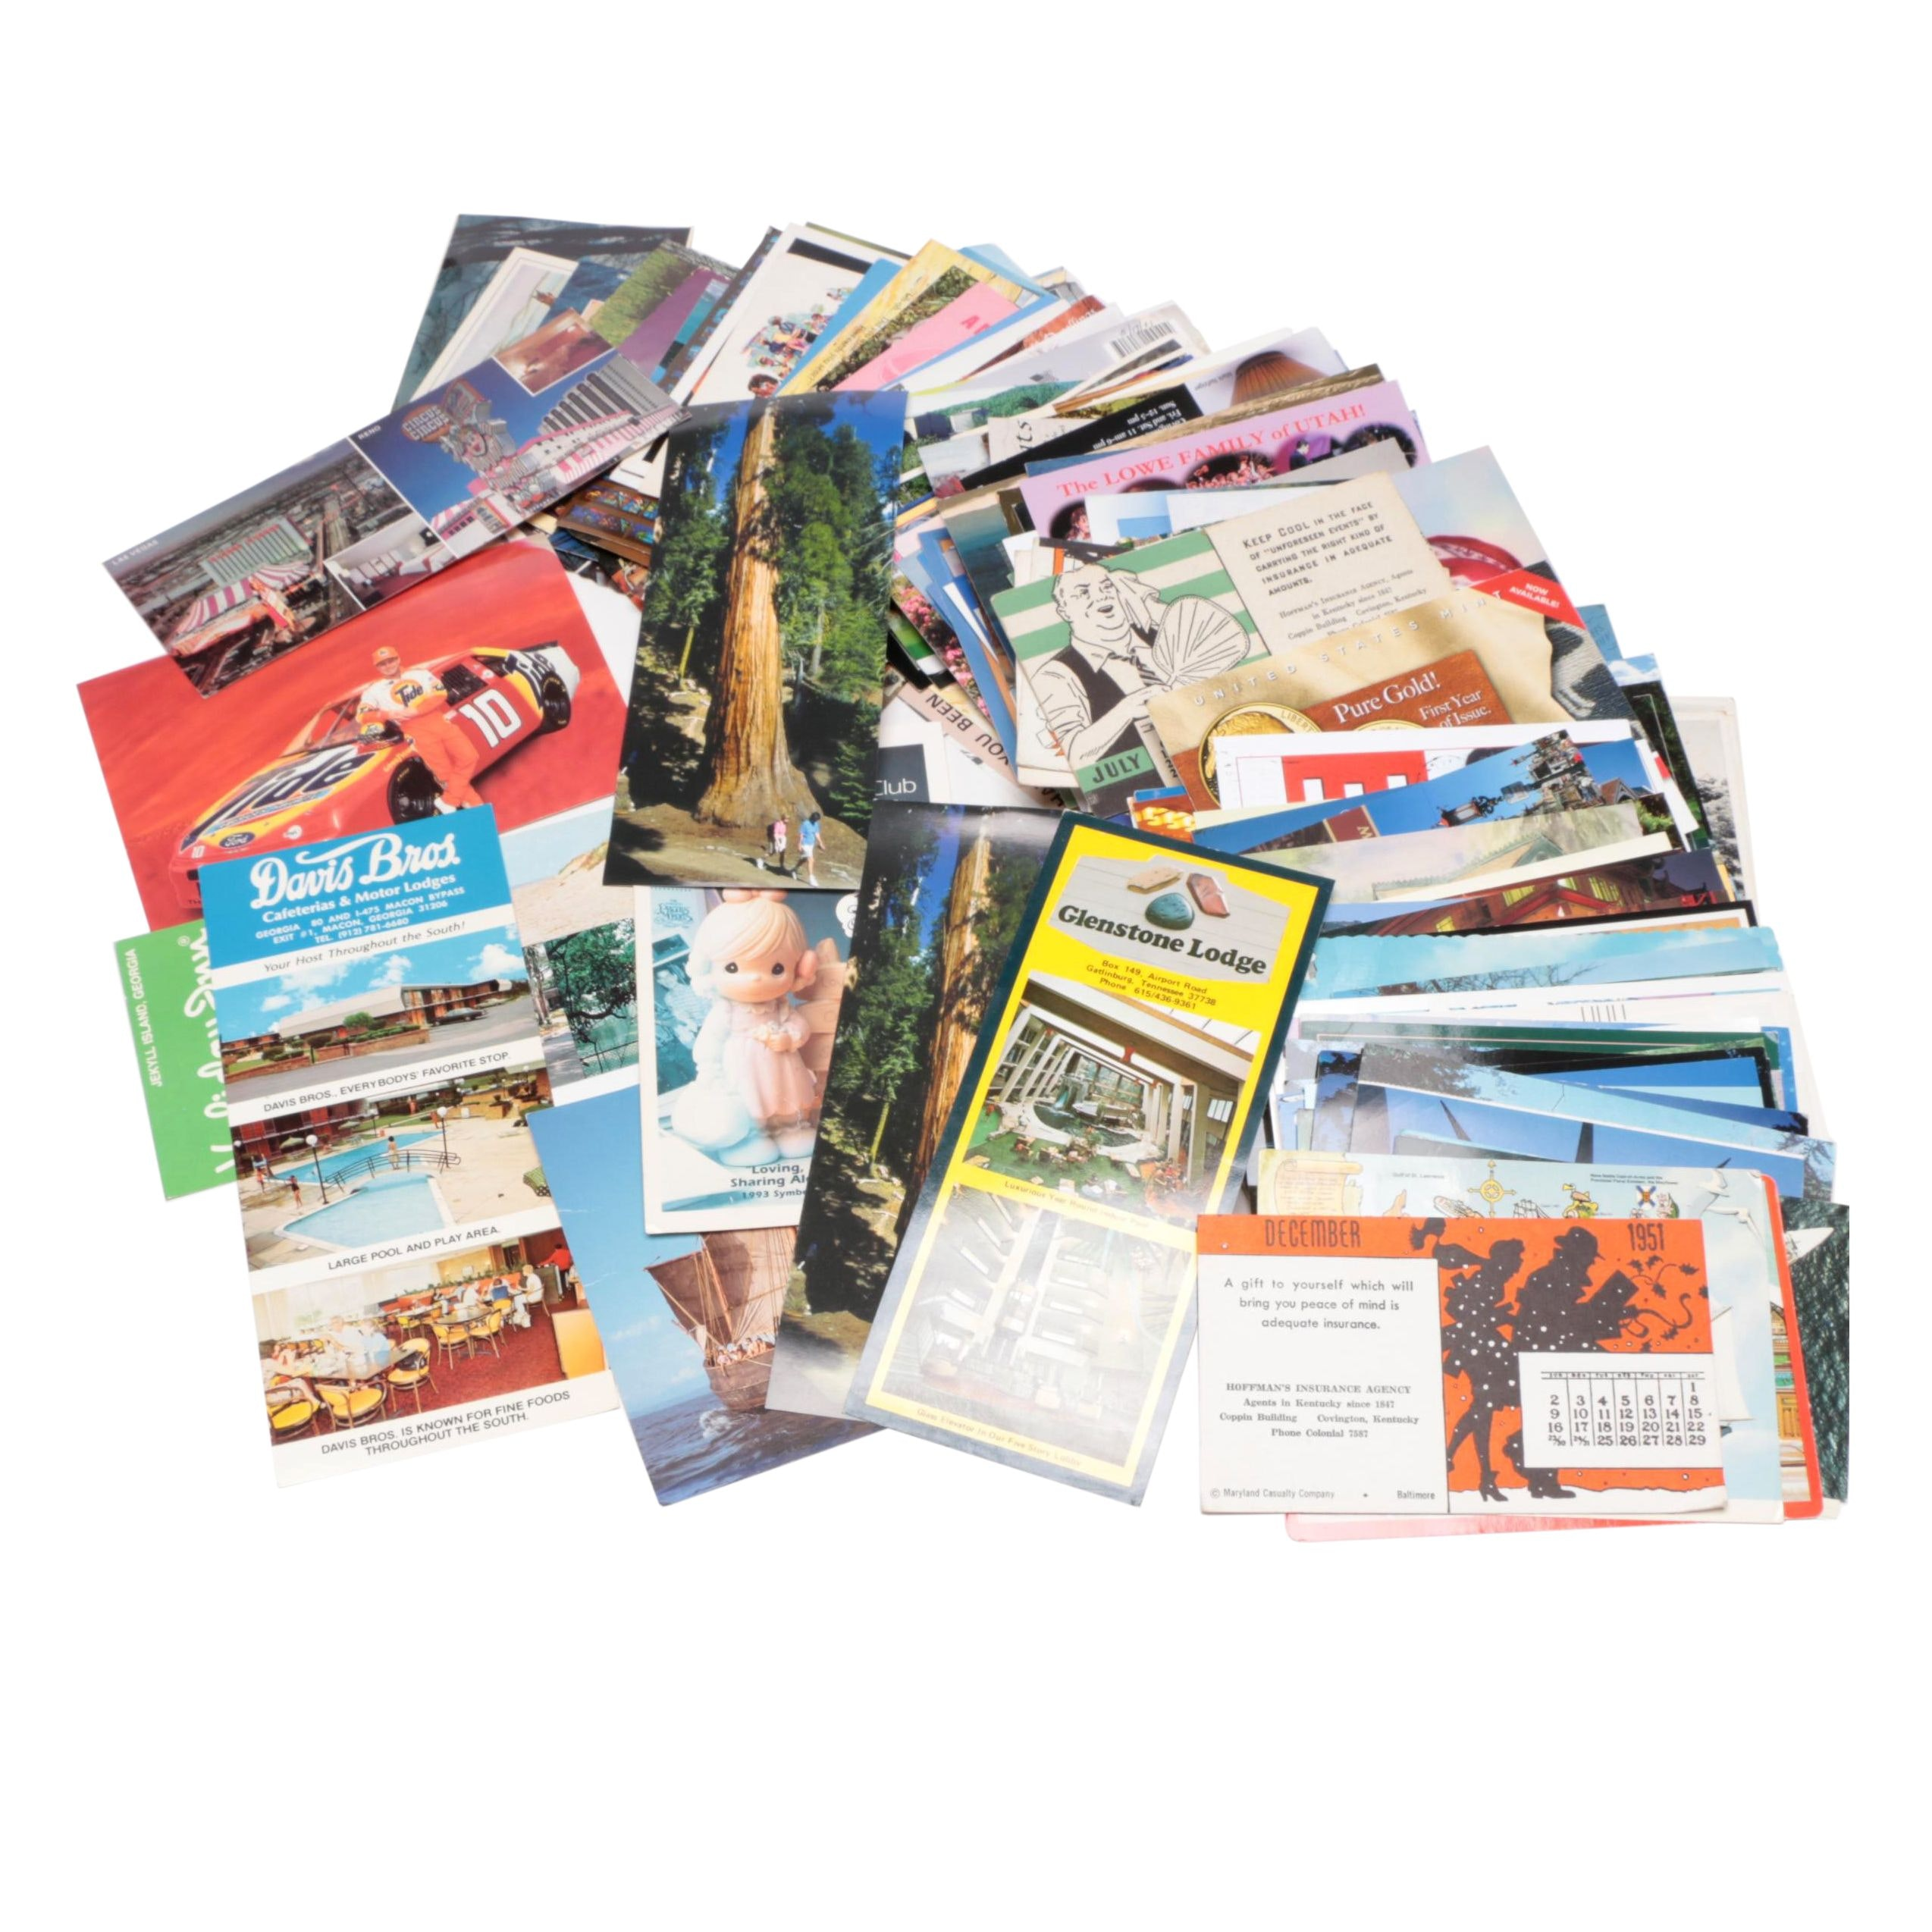 Postcards, Travel Flyers and Other Ephemera, Mid to Late 20th Century